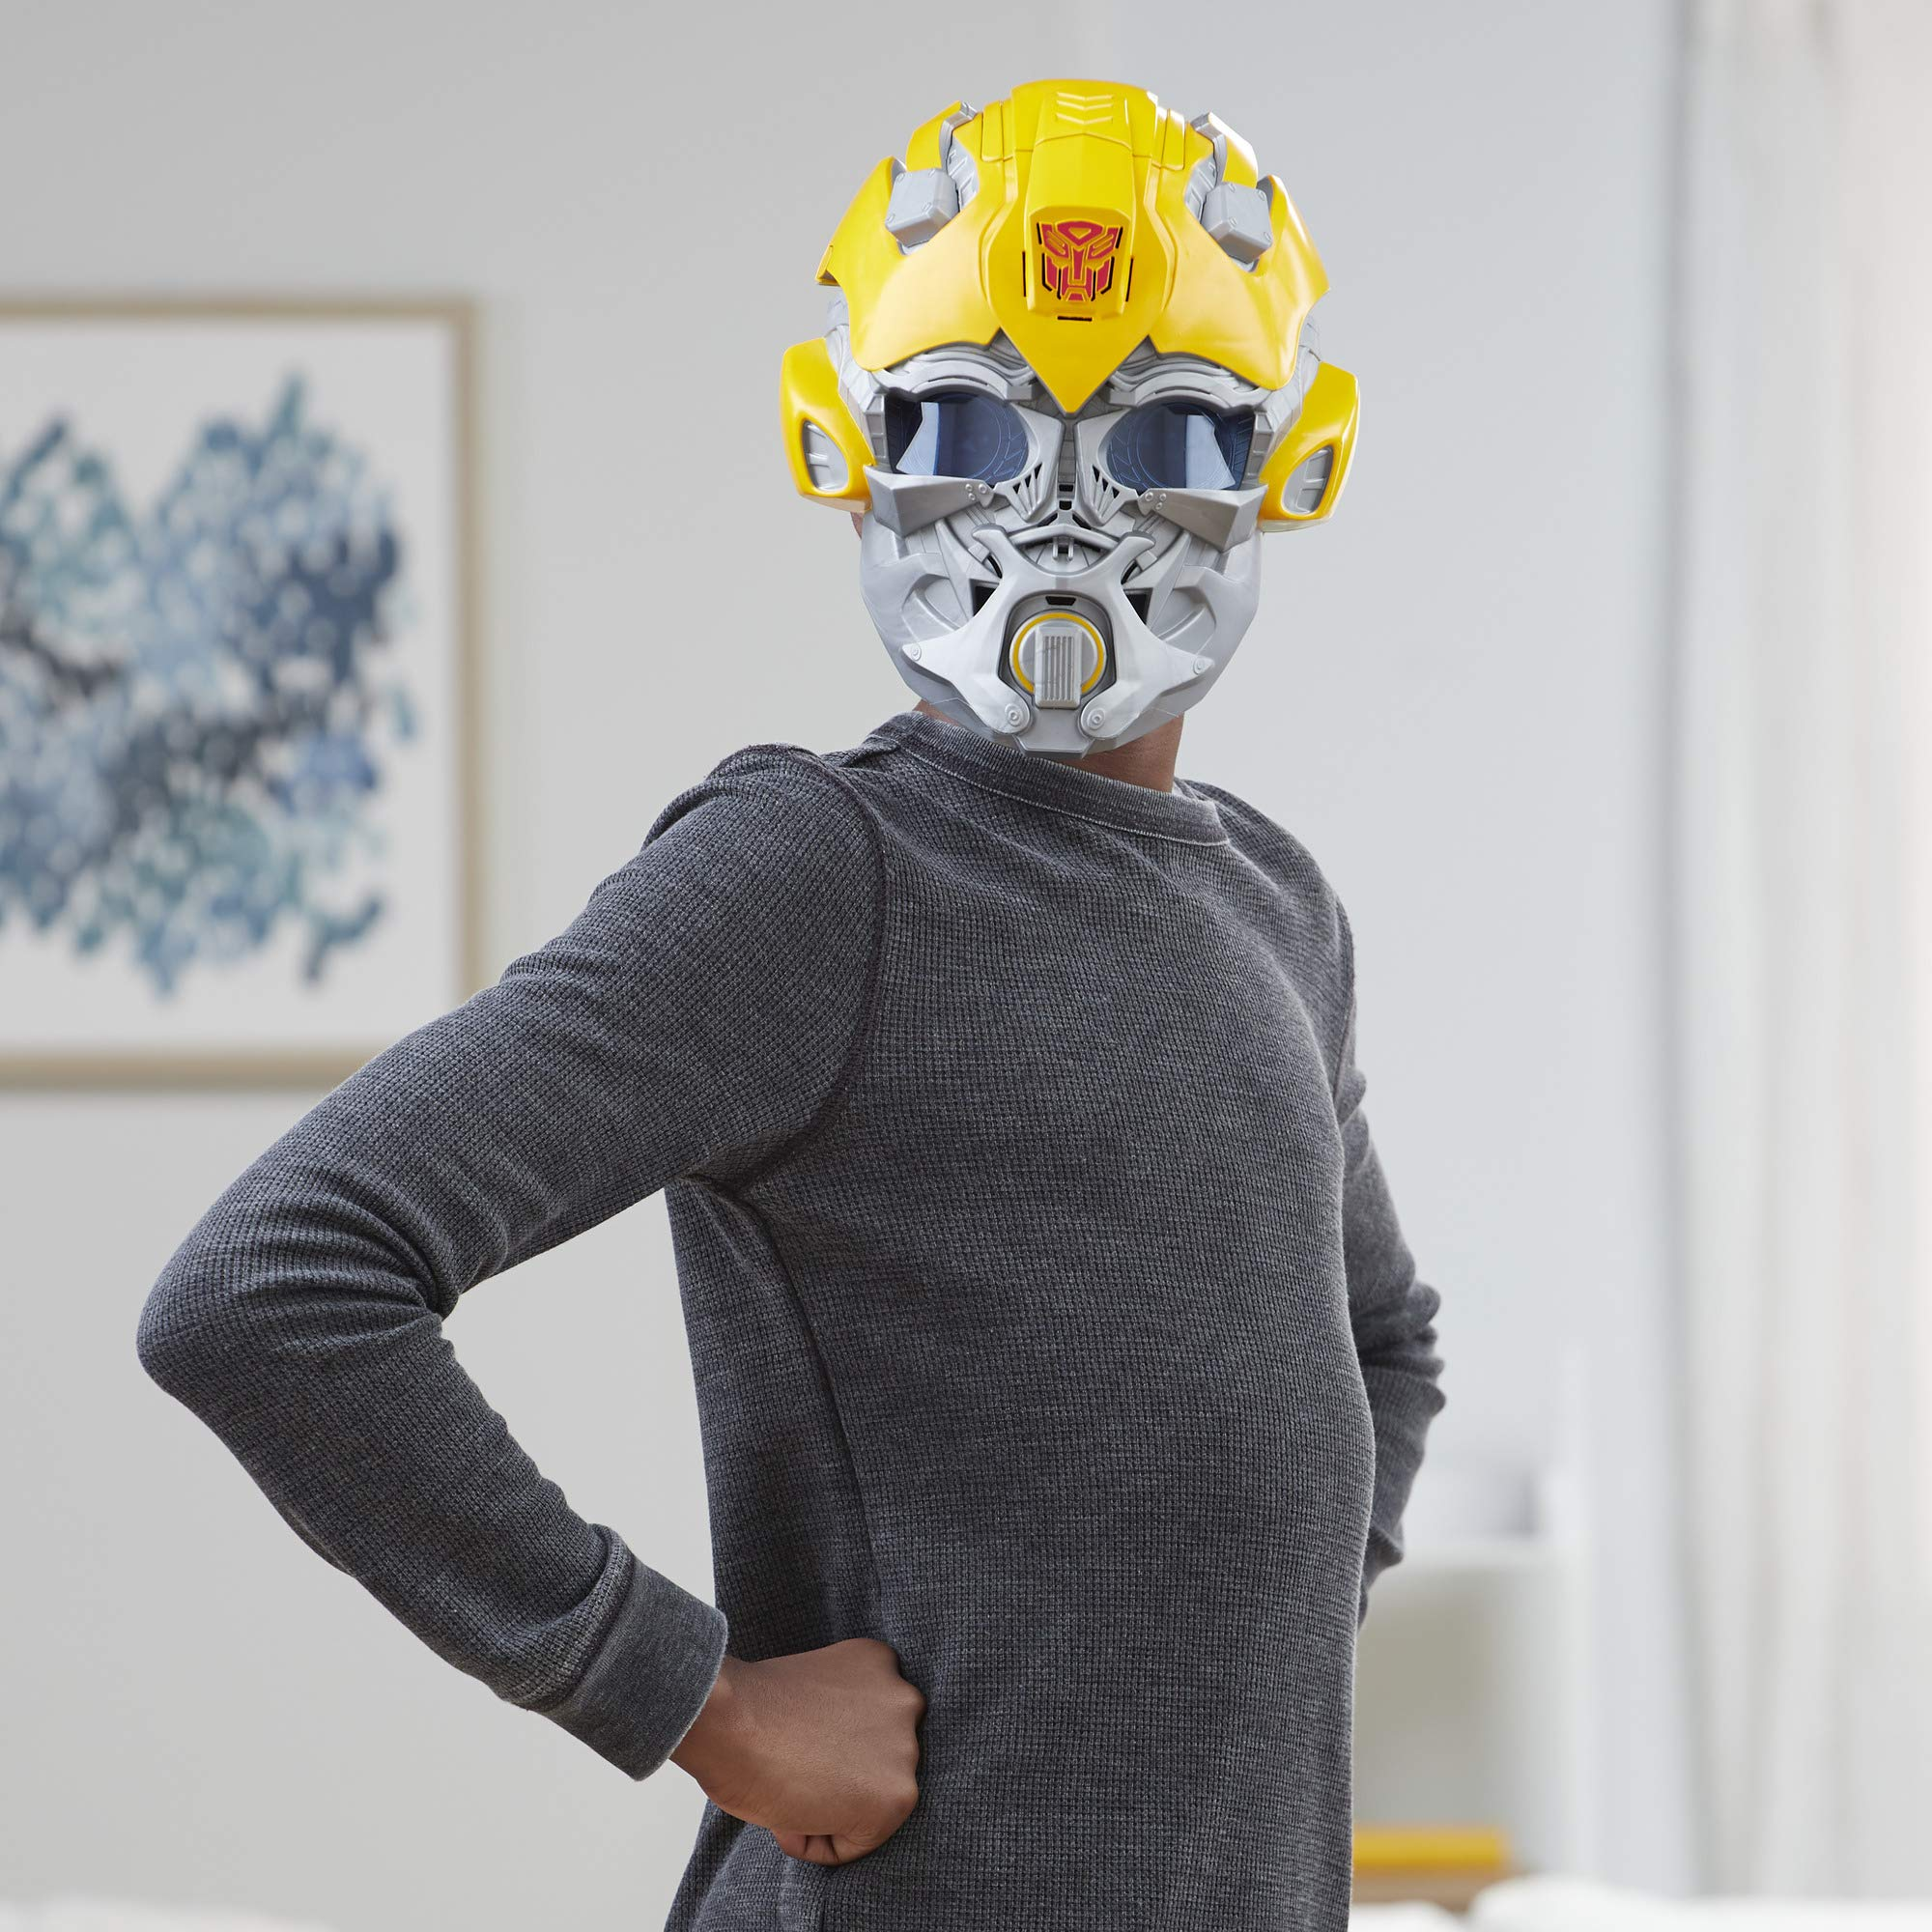 Transformers: Bumblebee -- Bumblebee Voice Changer Mask by Transformers (Image #5)